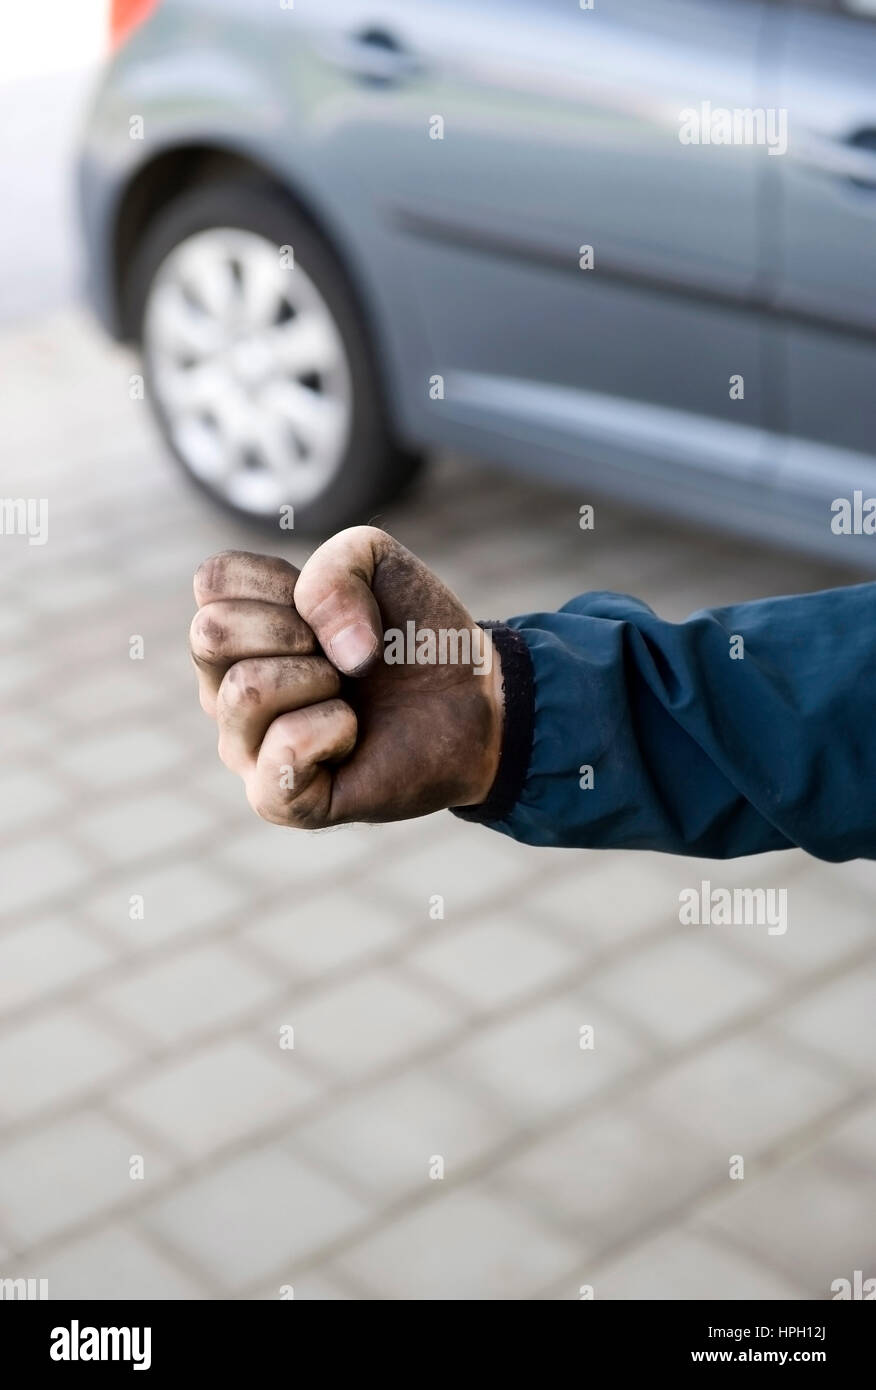 Model released , Geballte Faust eines Handwerkers - clenched fist of a workman Stock Photo